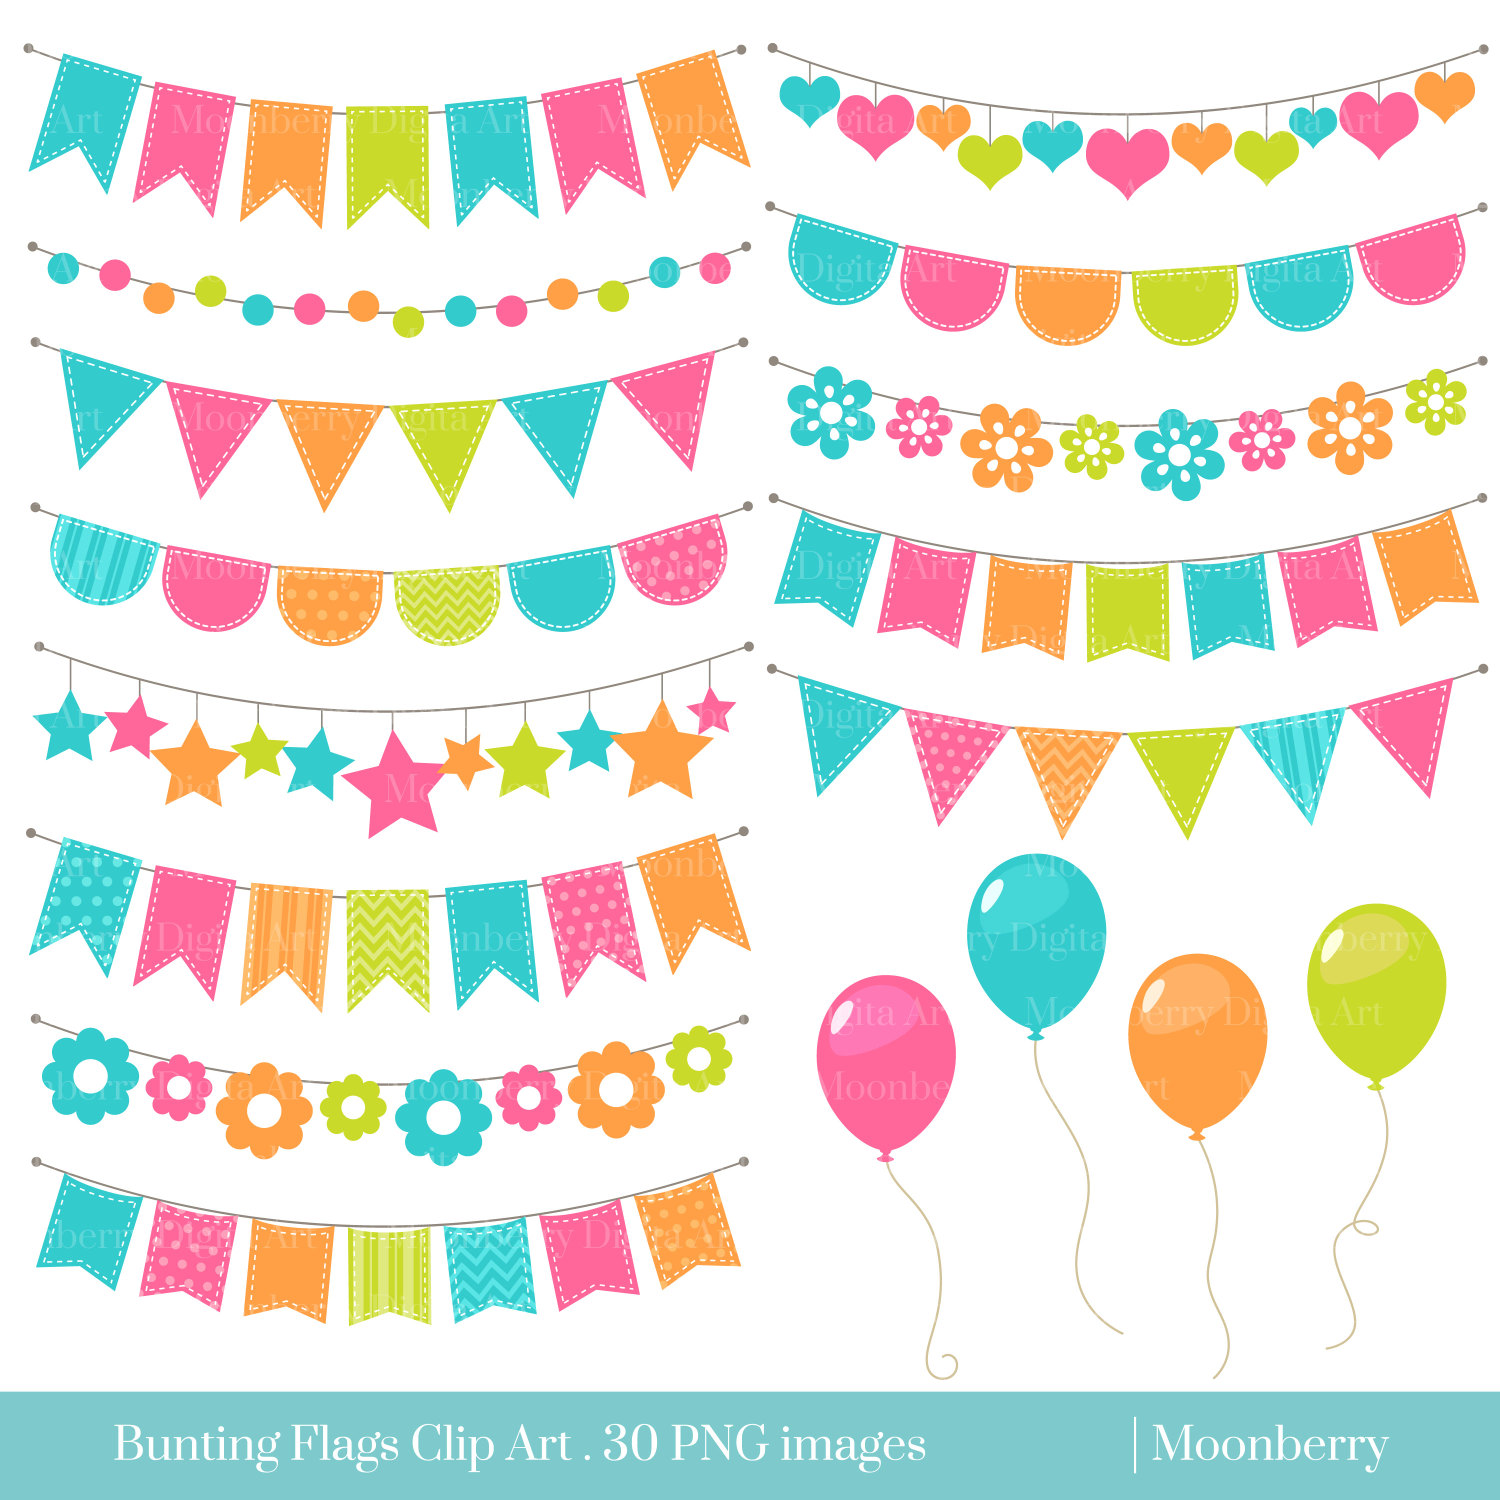 Pendent clipart coin Clip art Bunting Bunting Banners